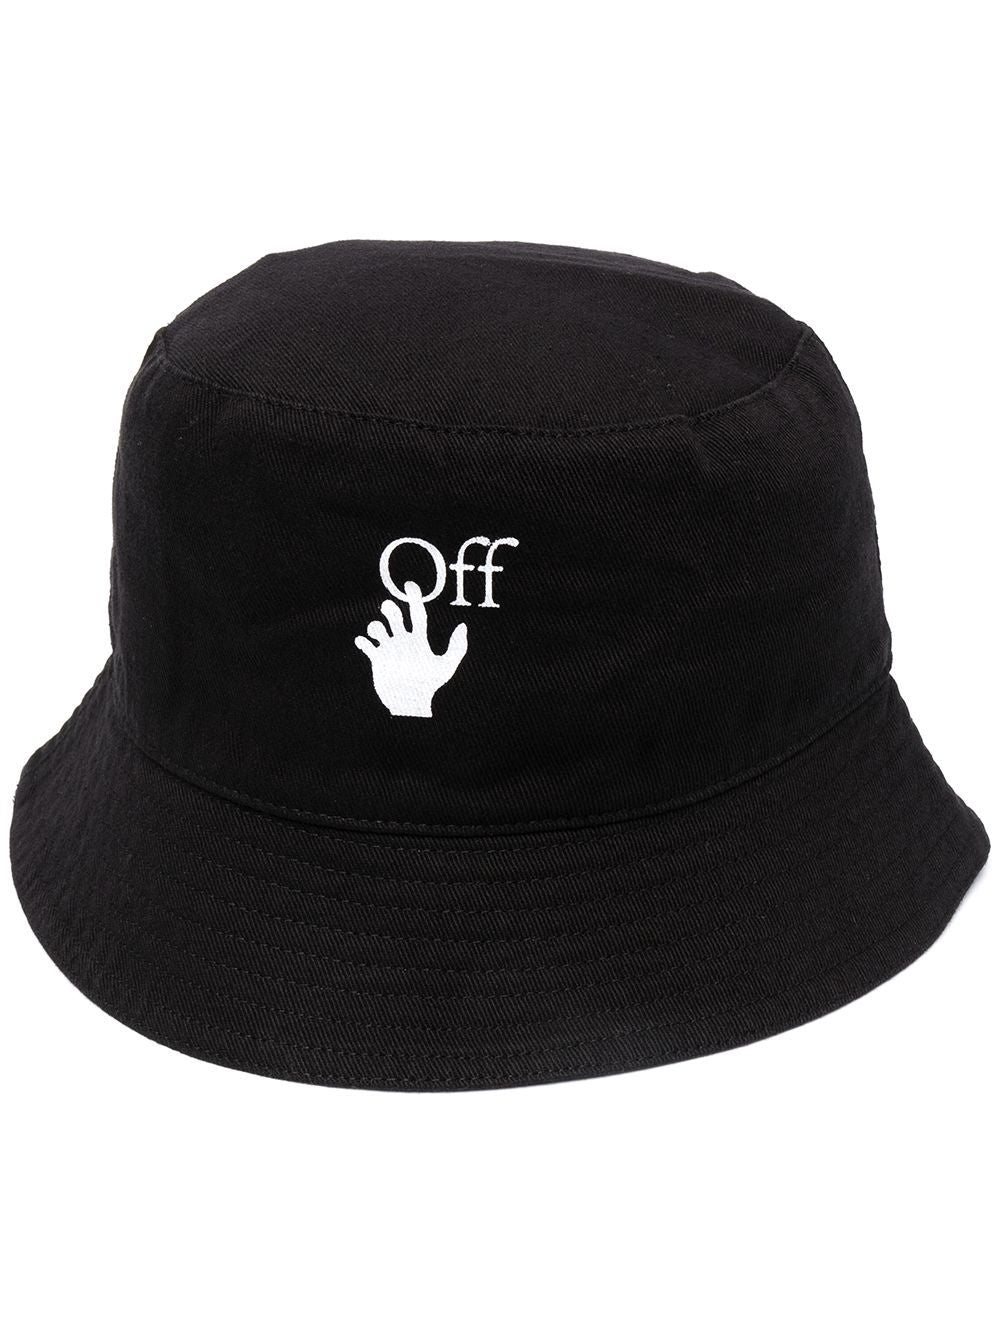 OFF-WHITE HAND OFF BUCKET HAT